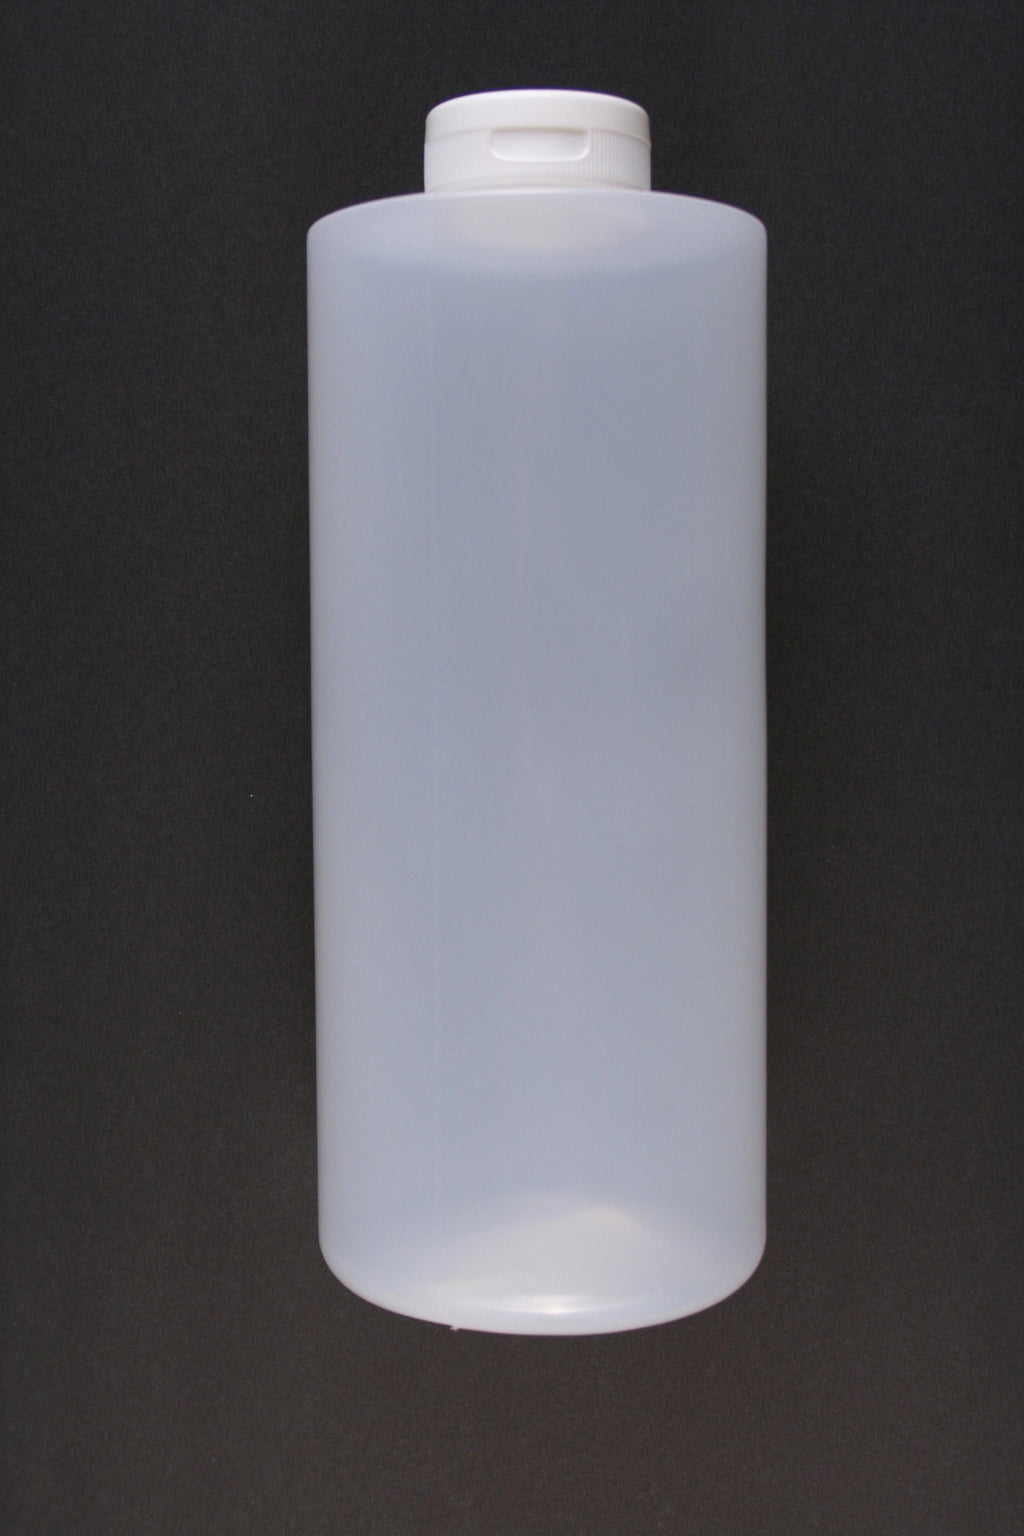 32oz Hinged Lid Squeeze Bottle